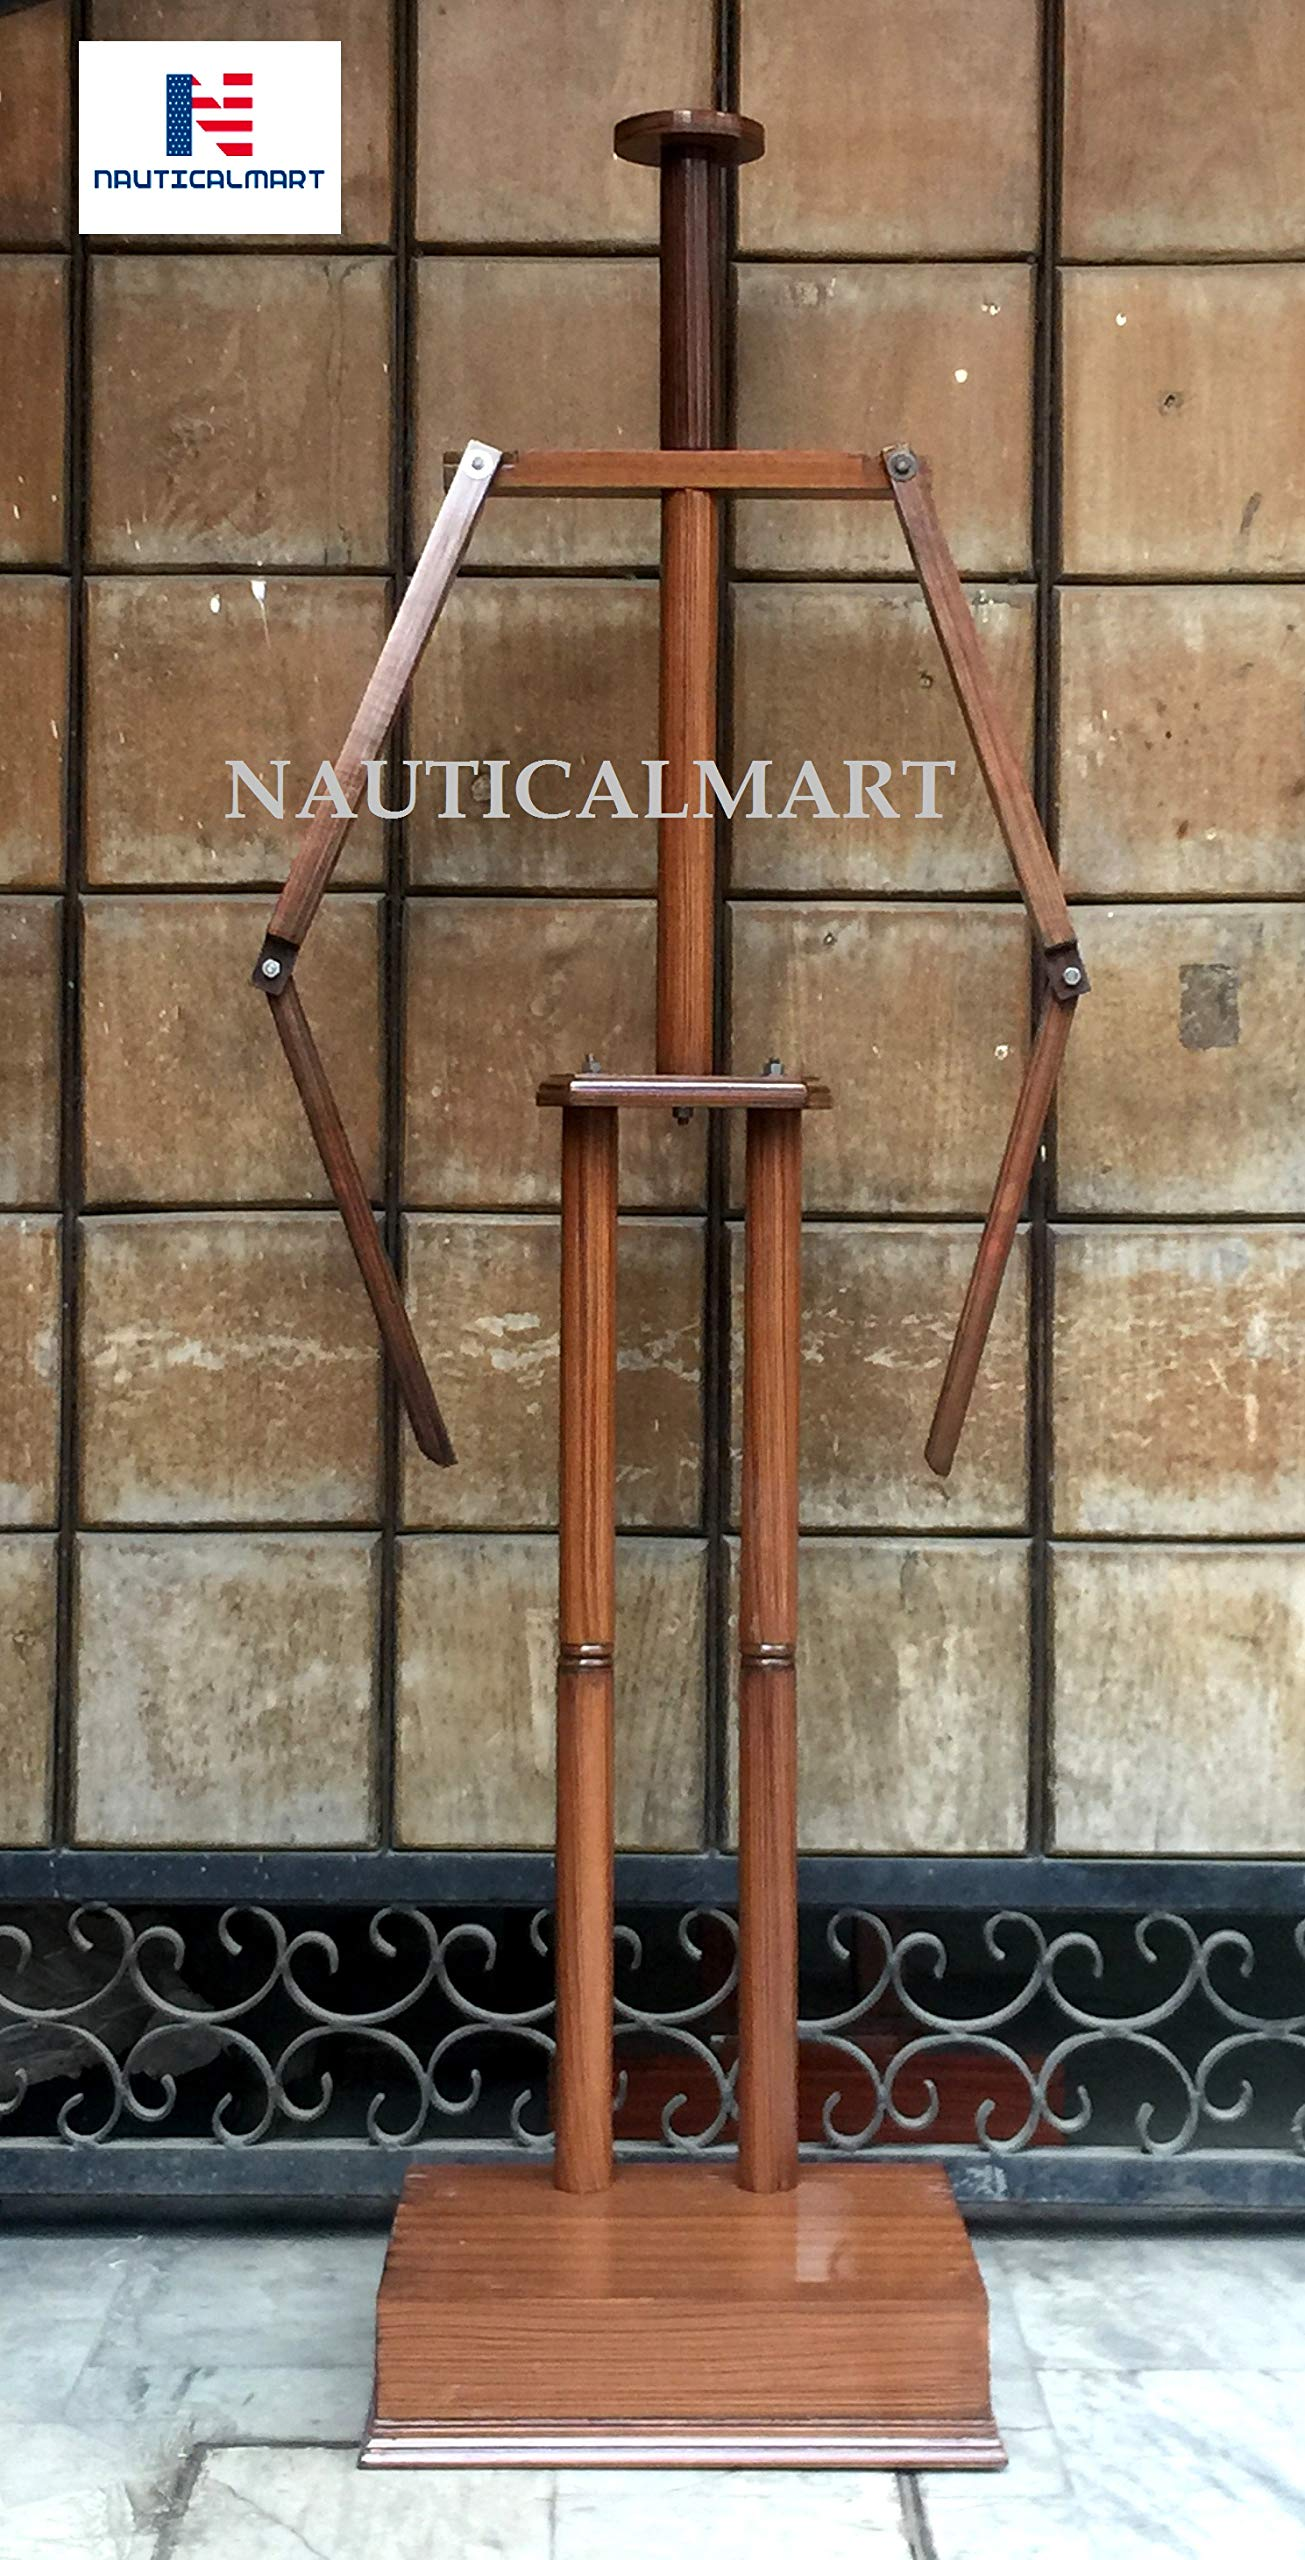 Nautical-Mart Medieval Full Suit of Armor Wooden Display Stand (Brown)